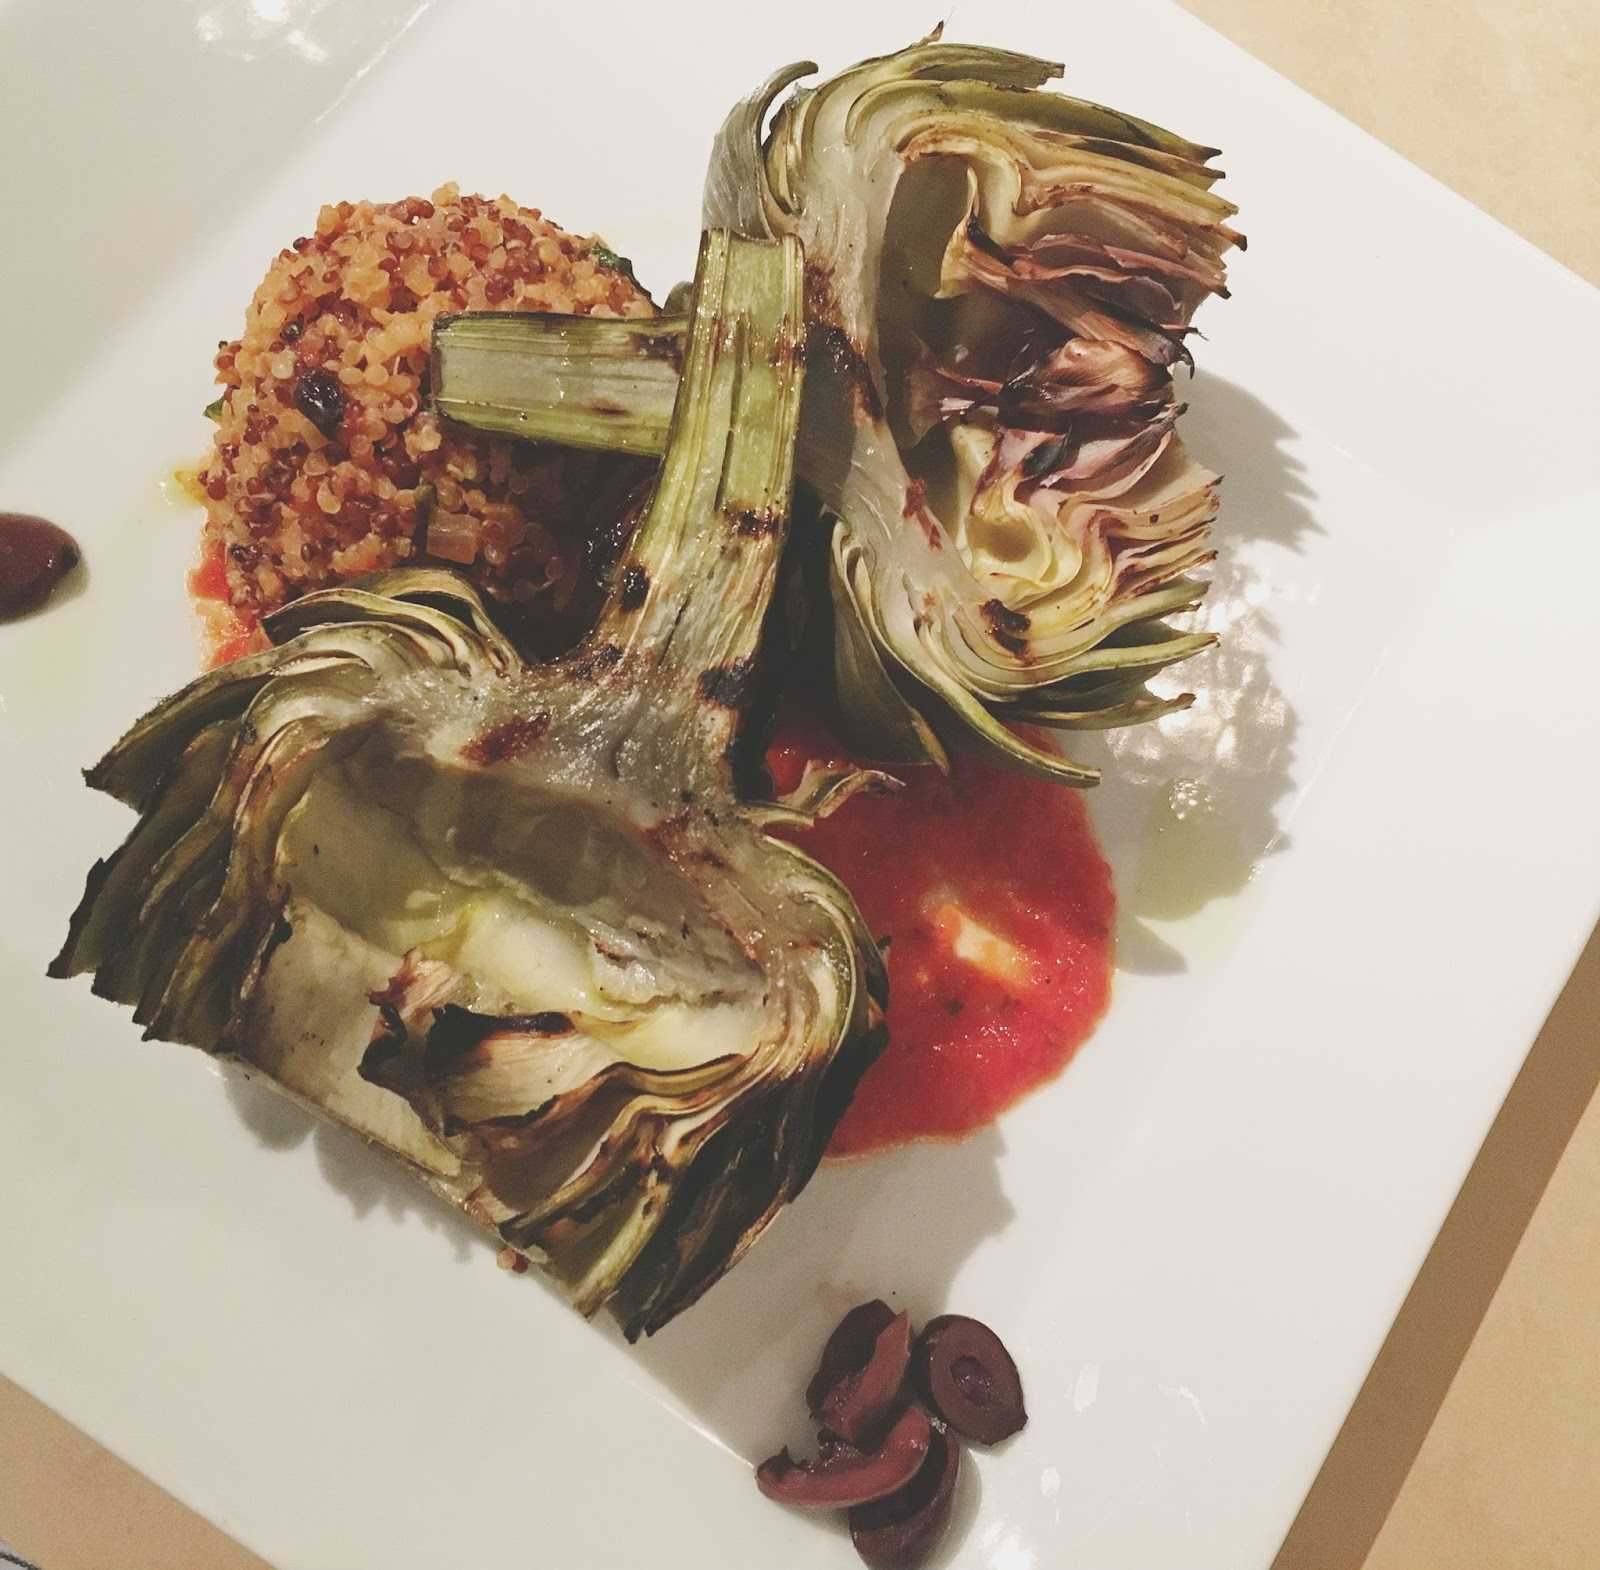 grilled artichoke entree at Celadon - a restaurant in Napa, California